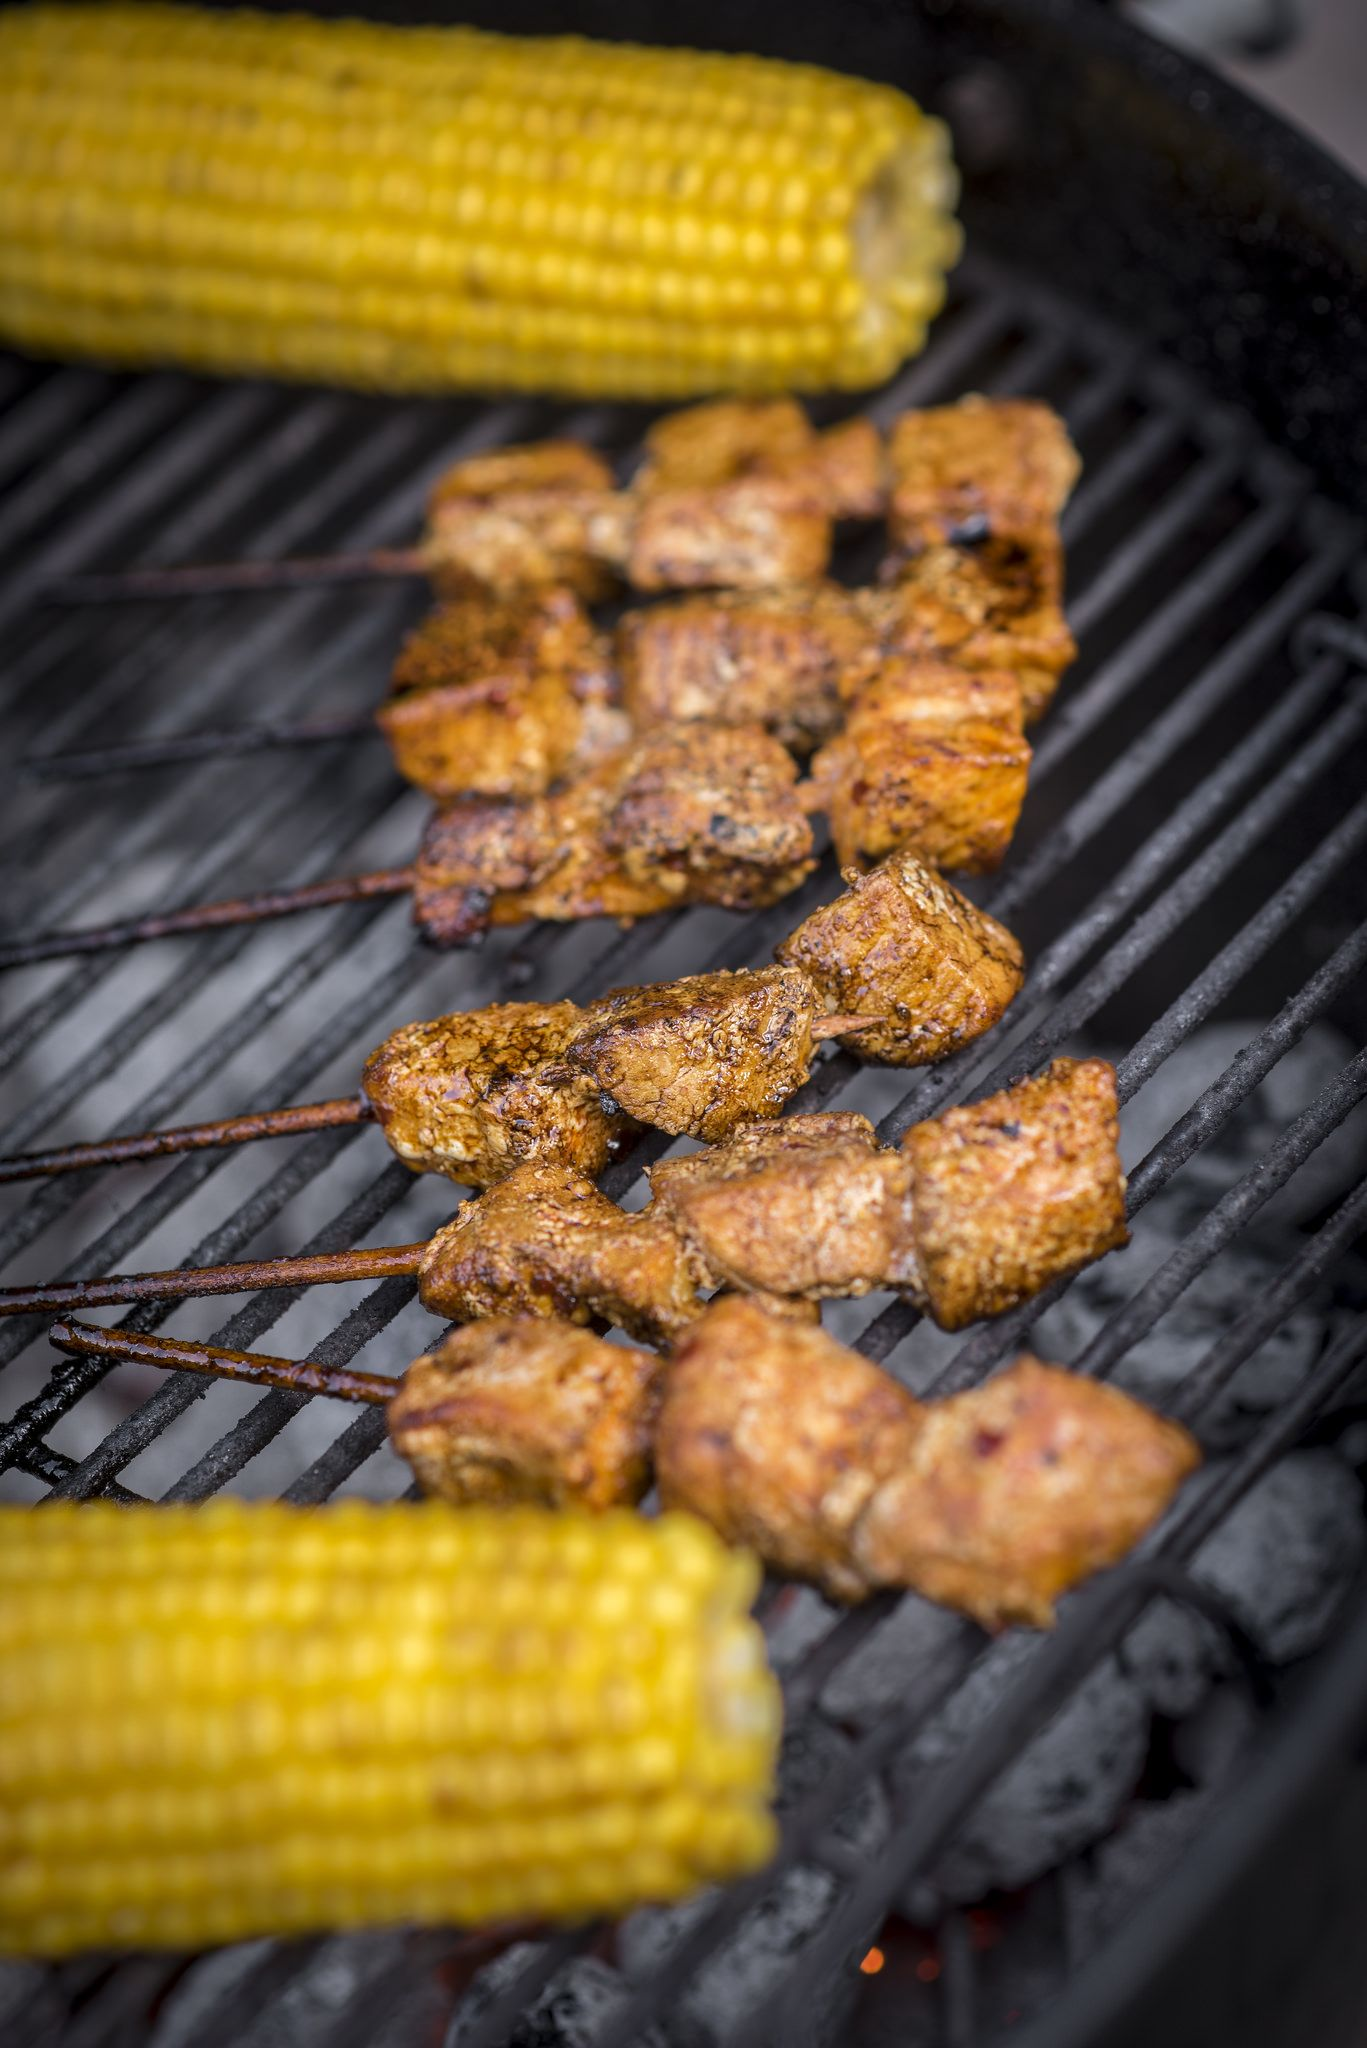 https://flic.kr/p/wSZZnr | 214/365. This hot day ended with some charcoal-grilled skewers